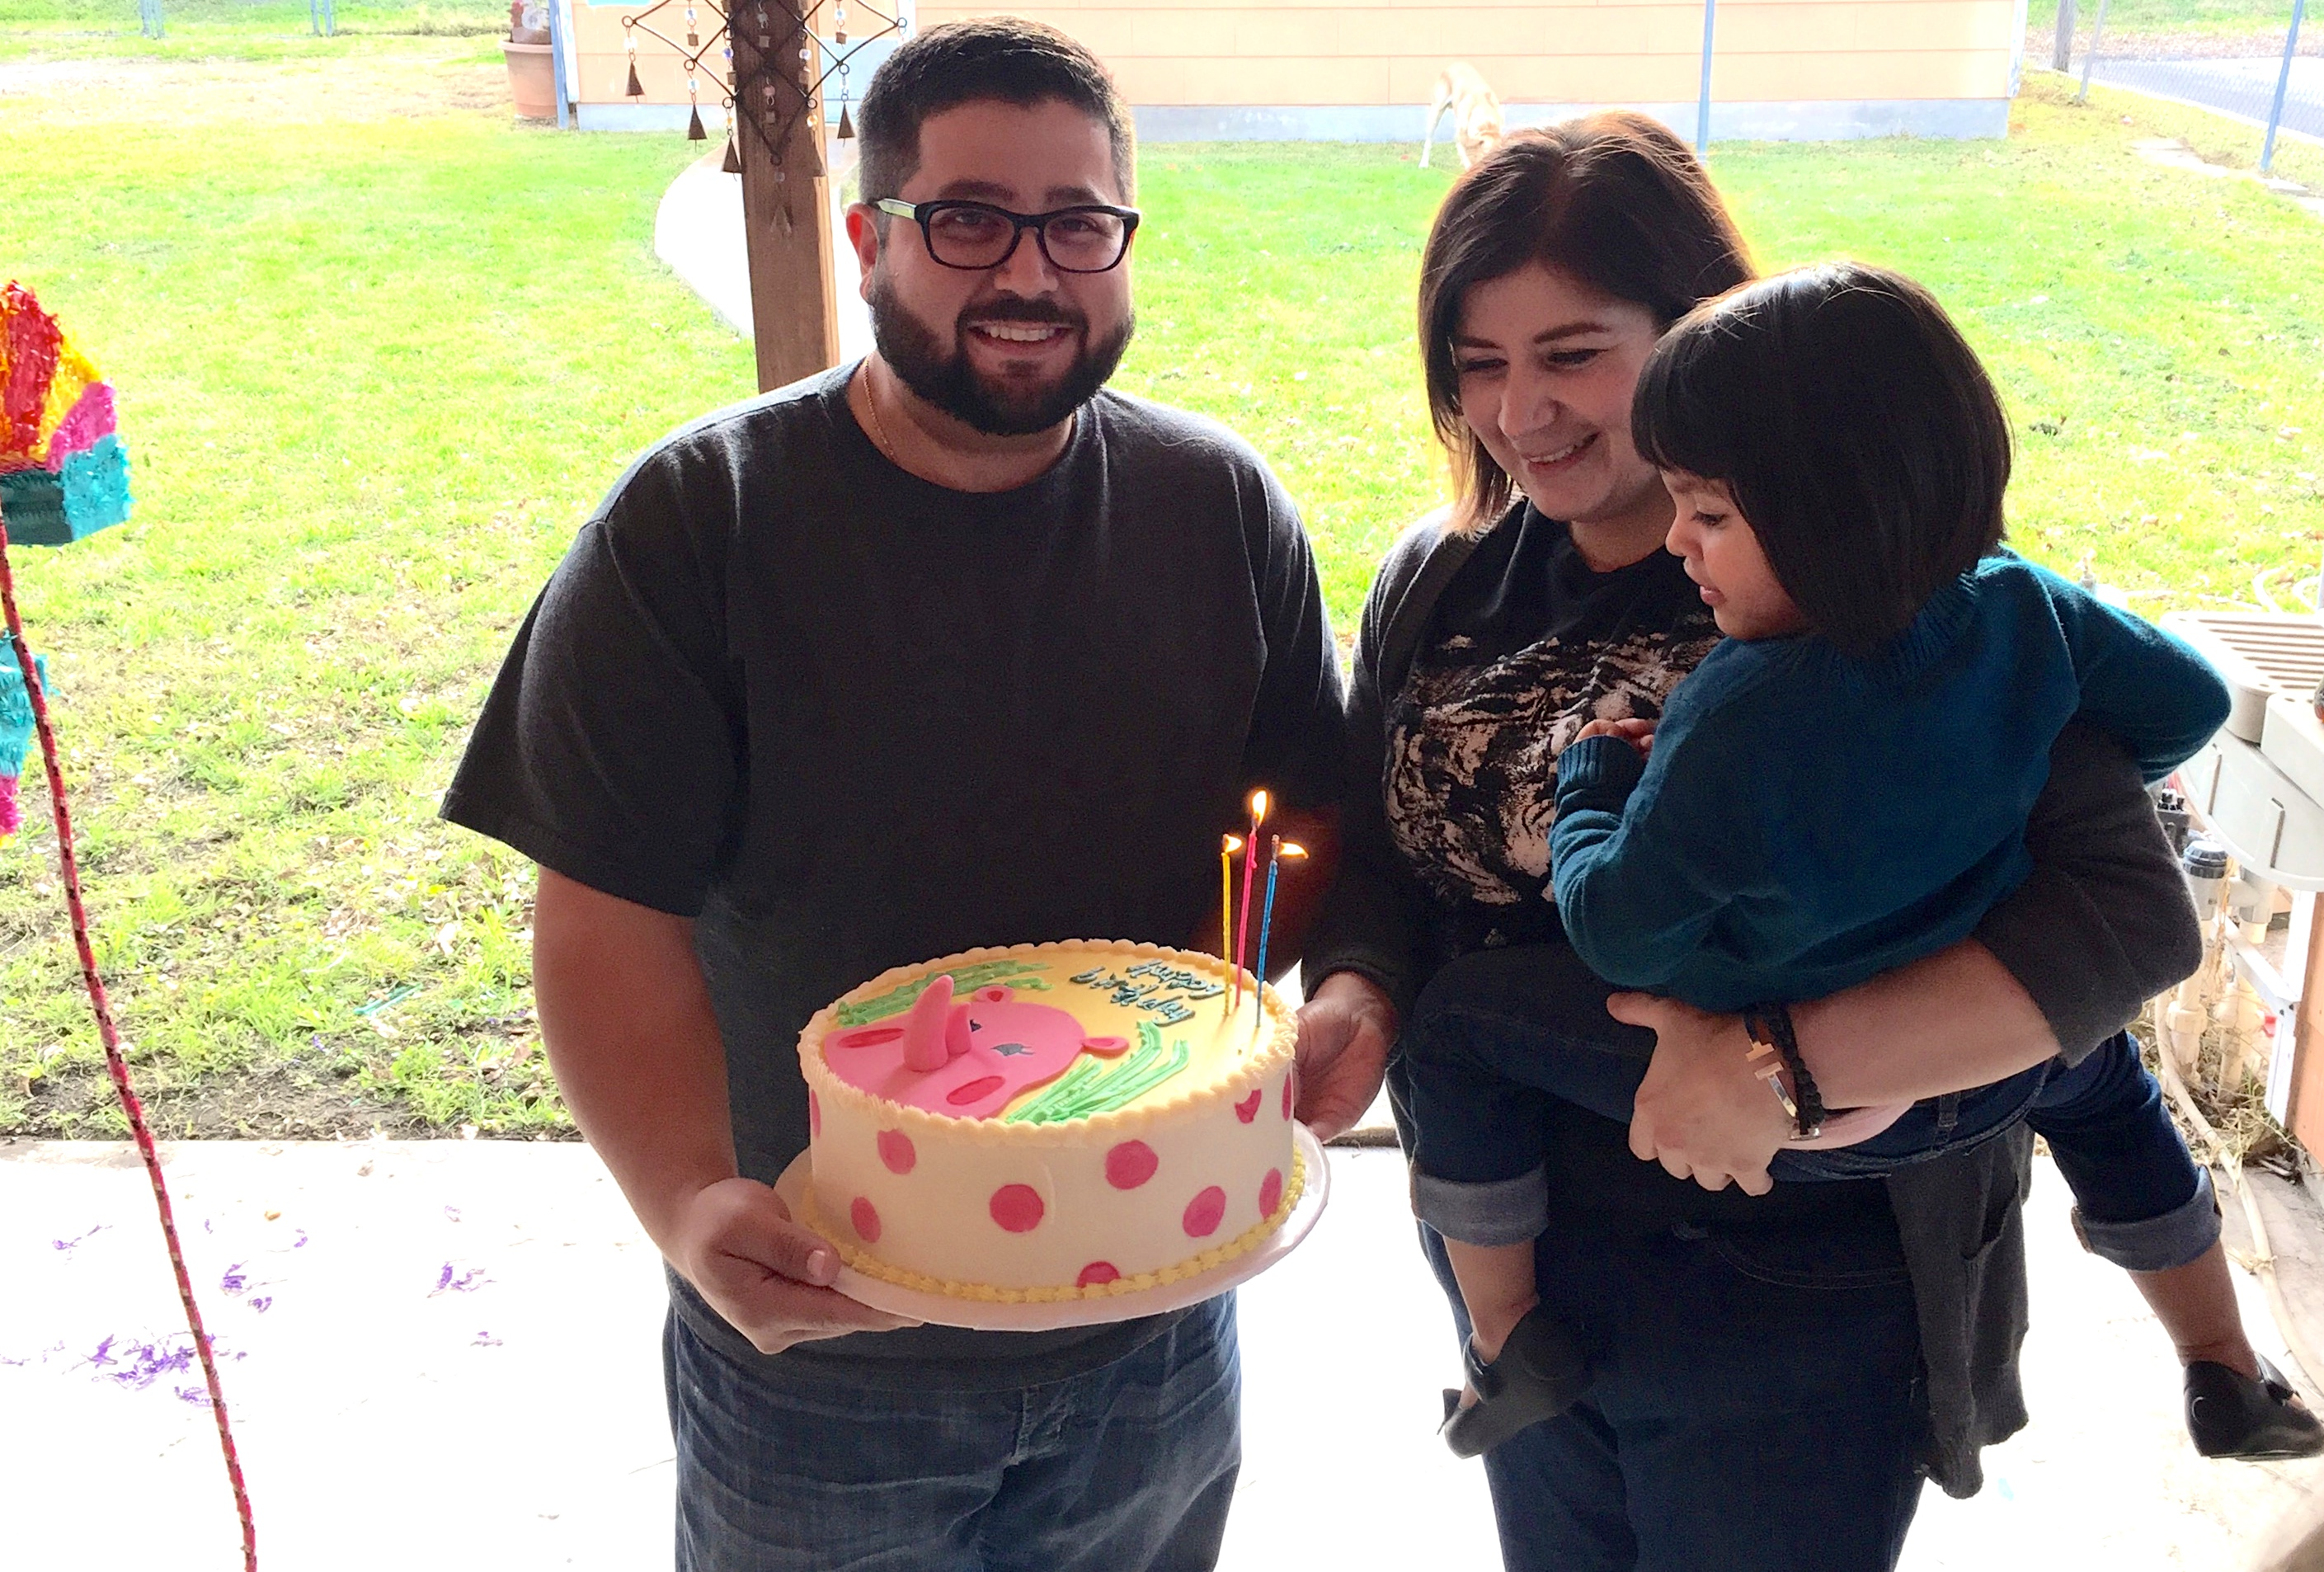 Milagro and her parents